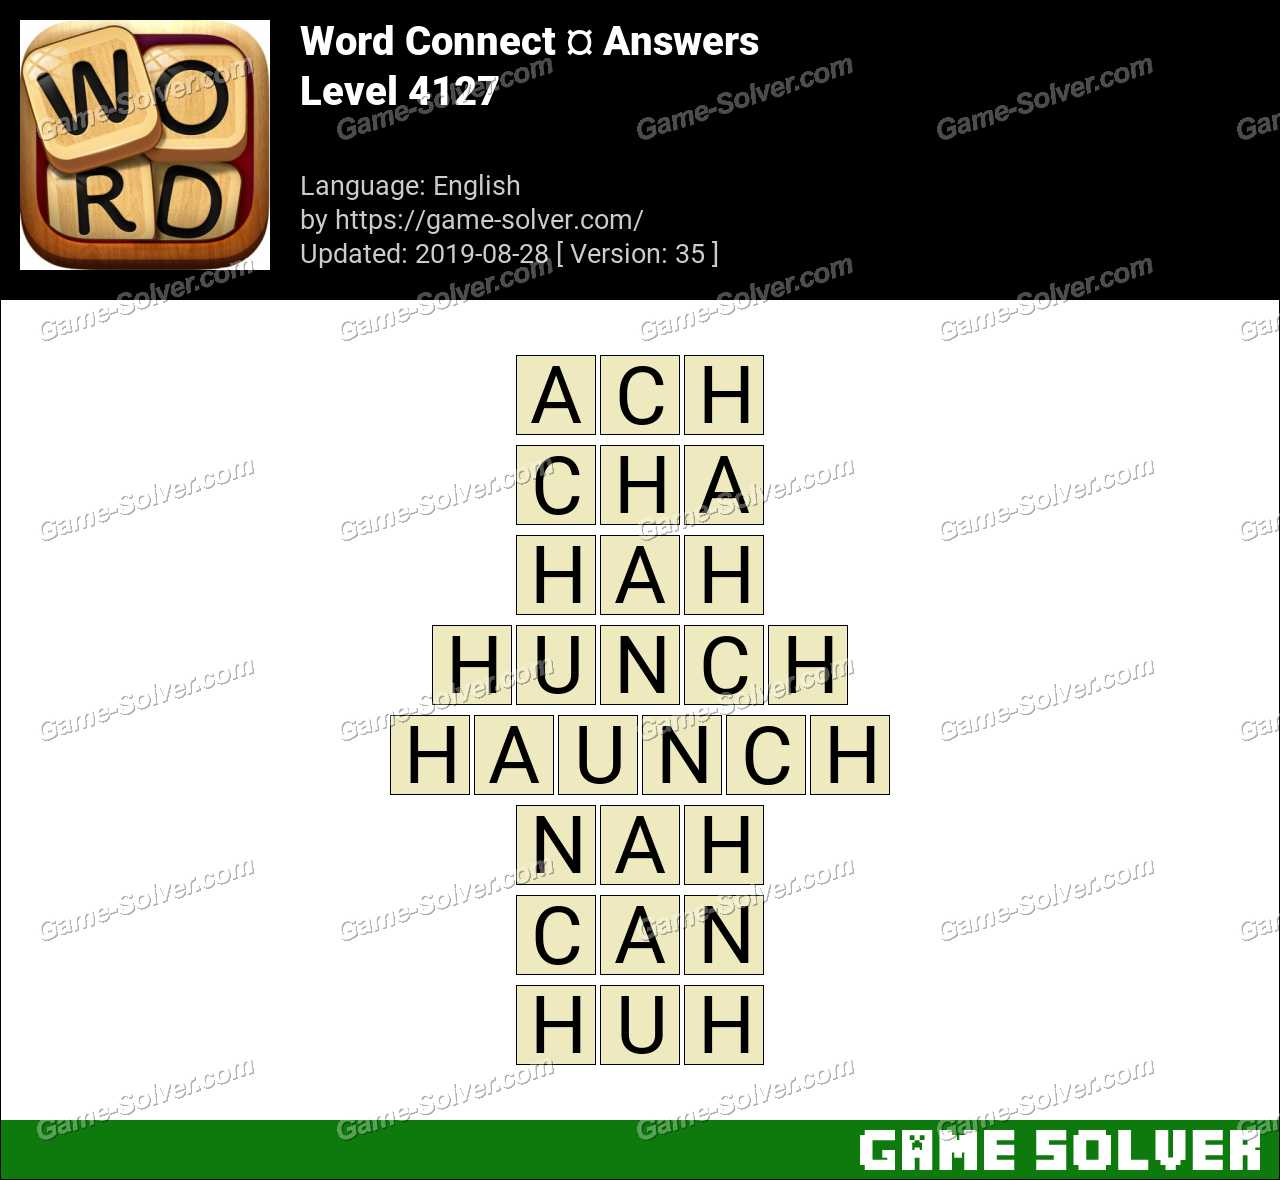 Word Connect Level 4127 Answers